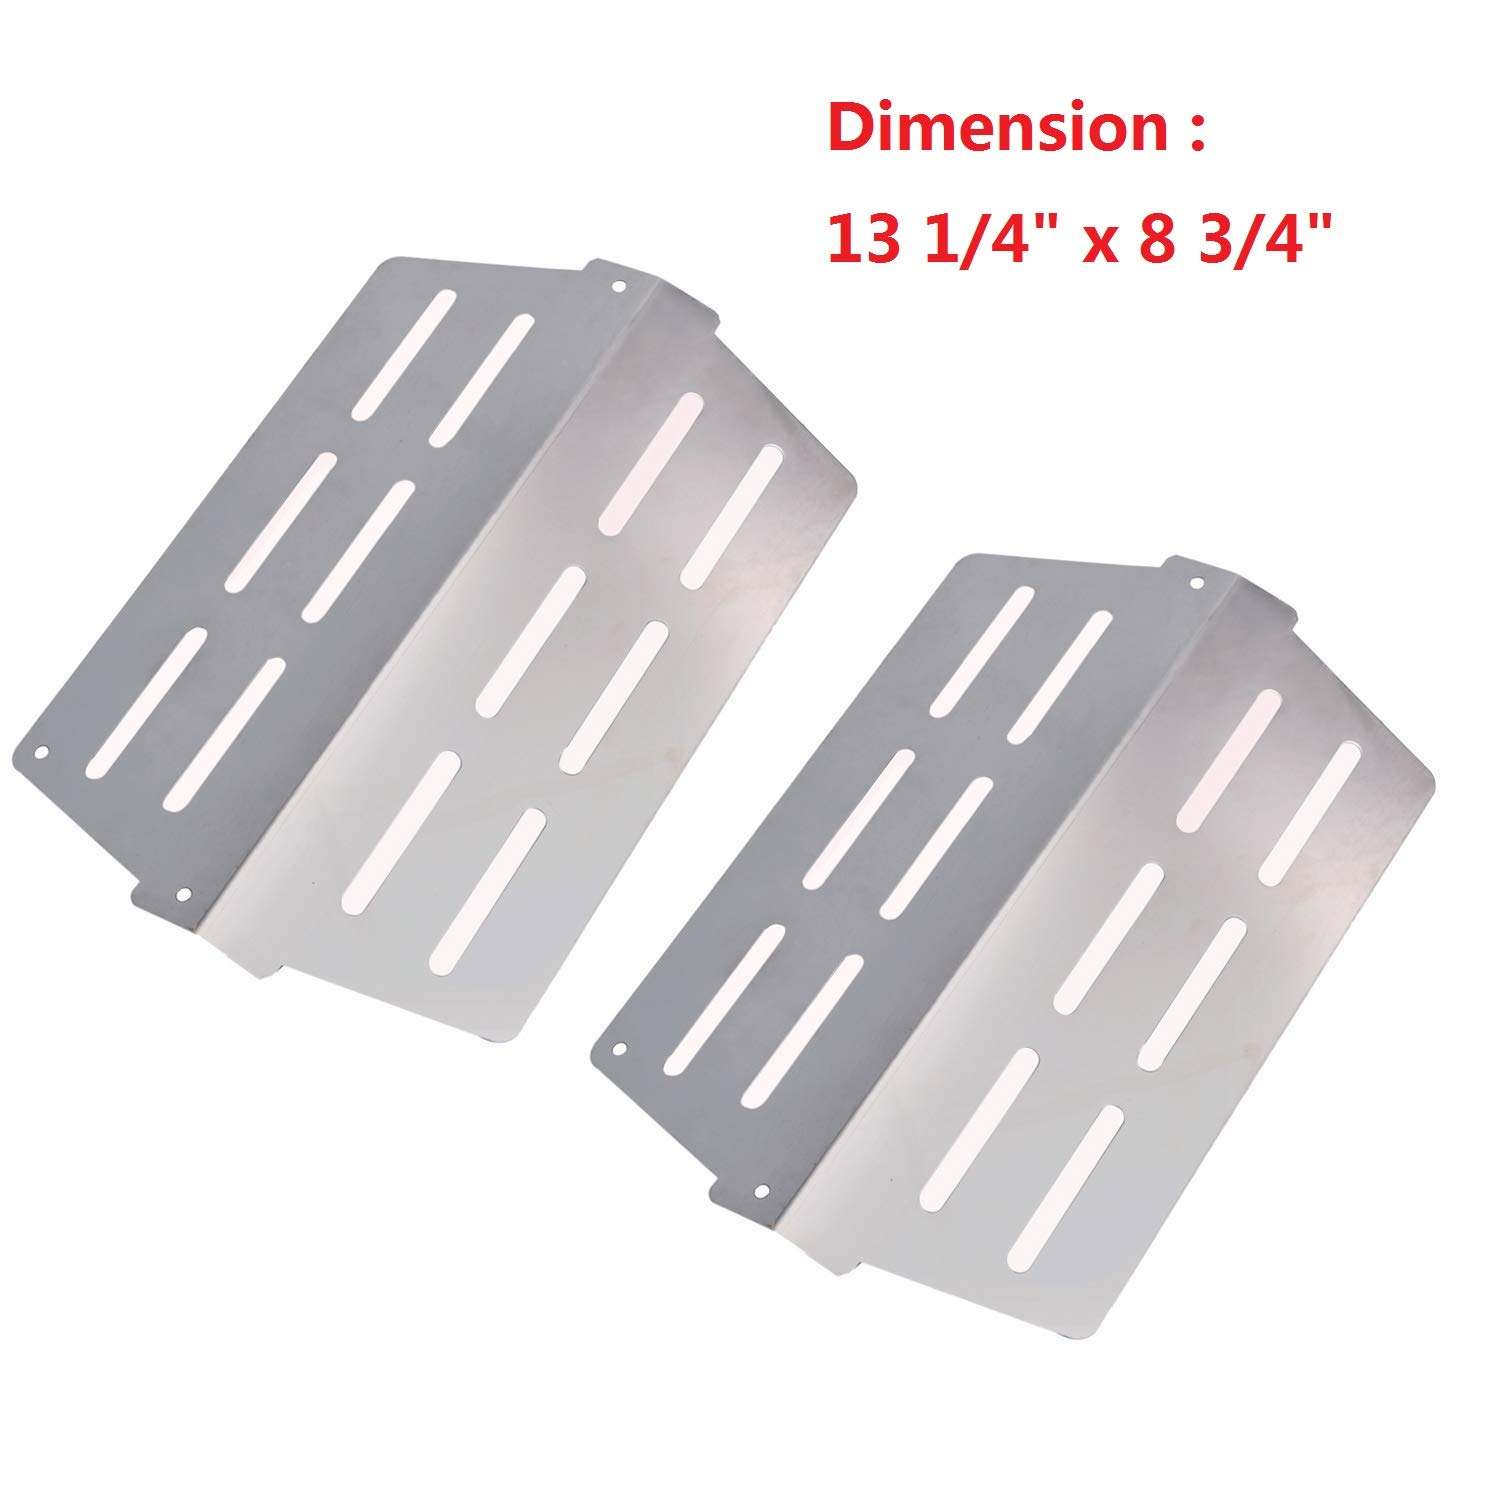 Heat Deflectors Replacement for Weber 7622 65505 Genesis 300 Series Grill,(2011 & Newer up Front Mounted Control Panels) Flavorizer Bar Heat Plate (13 1/4 x 8 3/4 inch)(2 Pack)